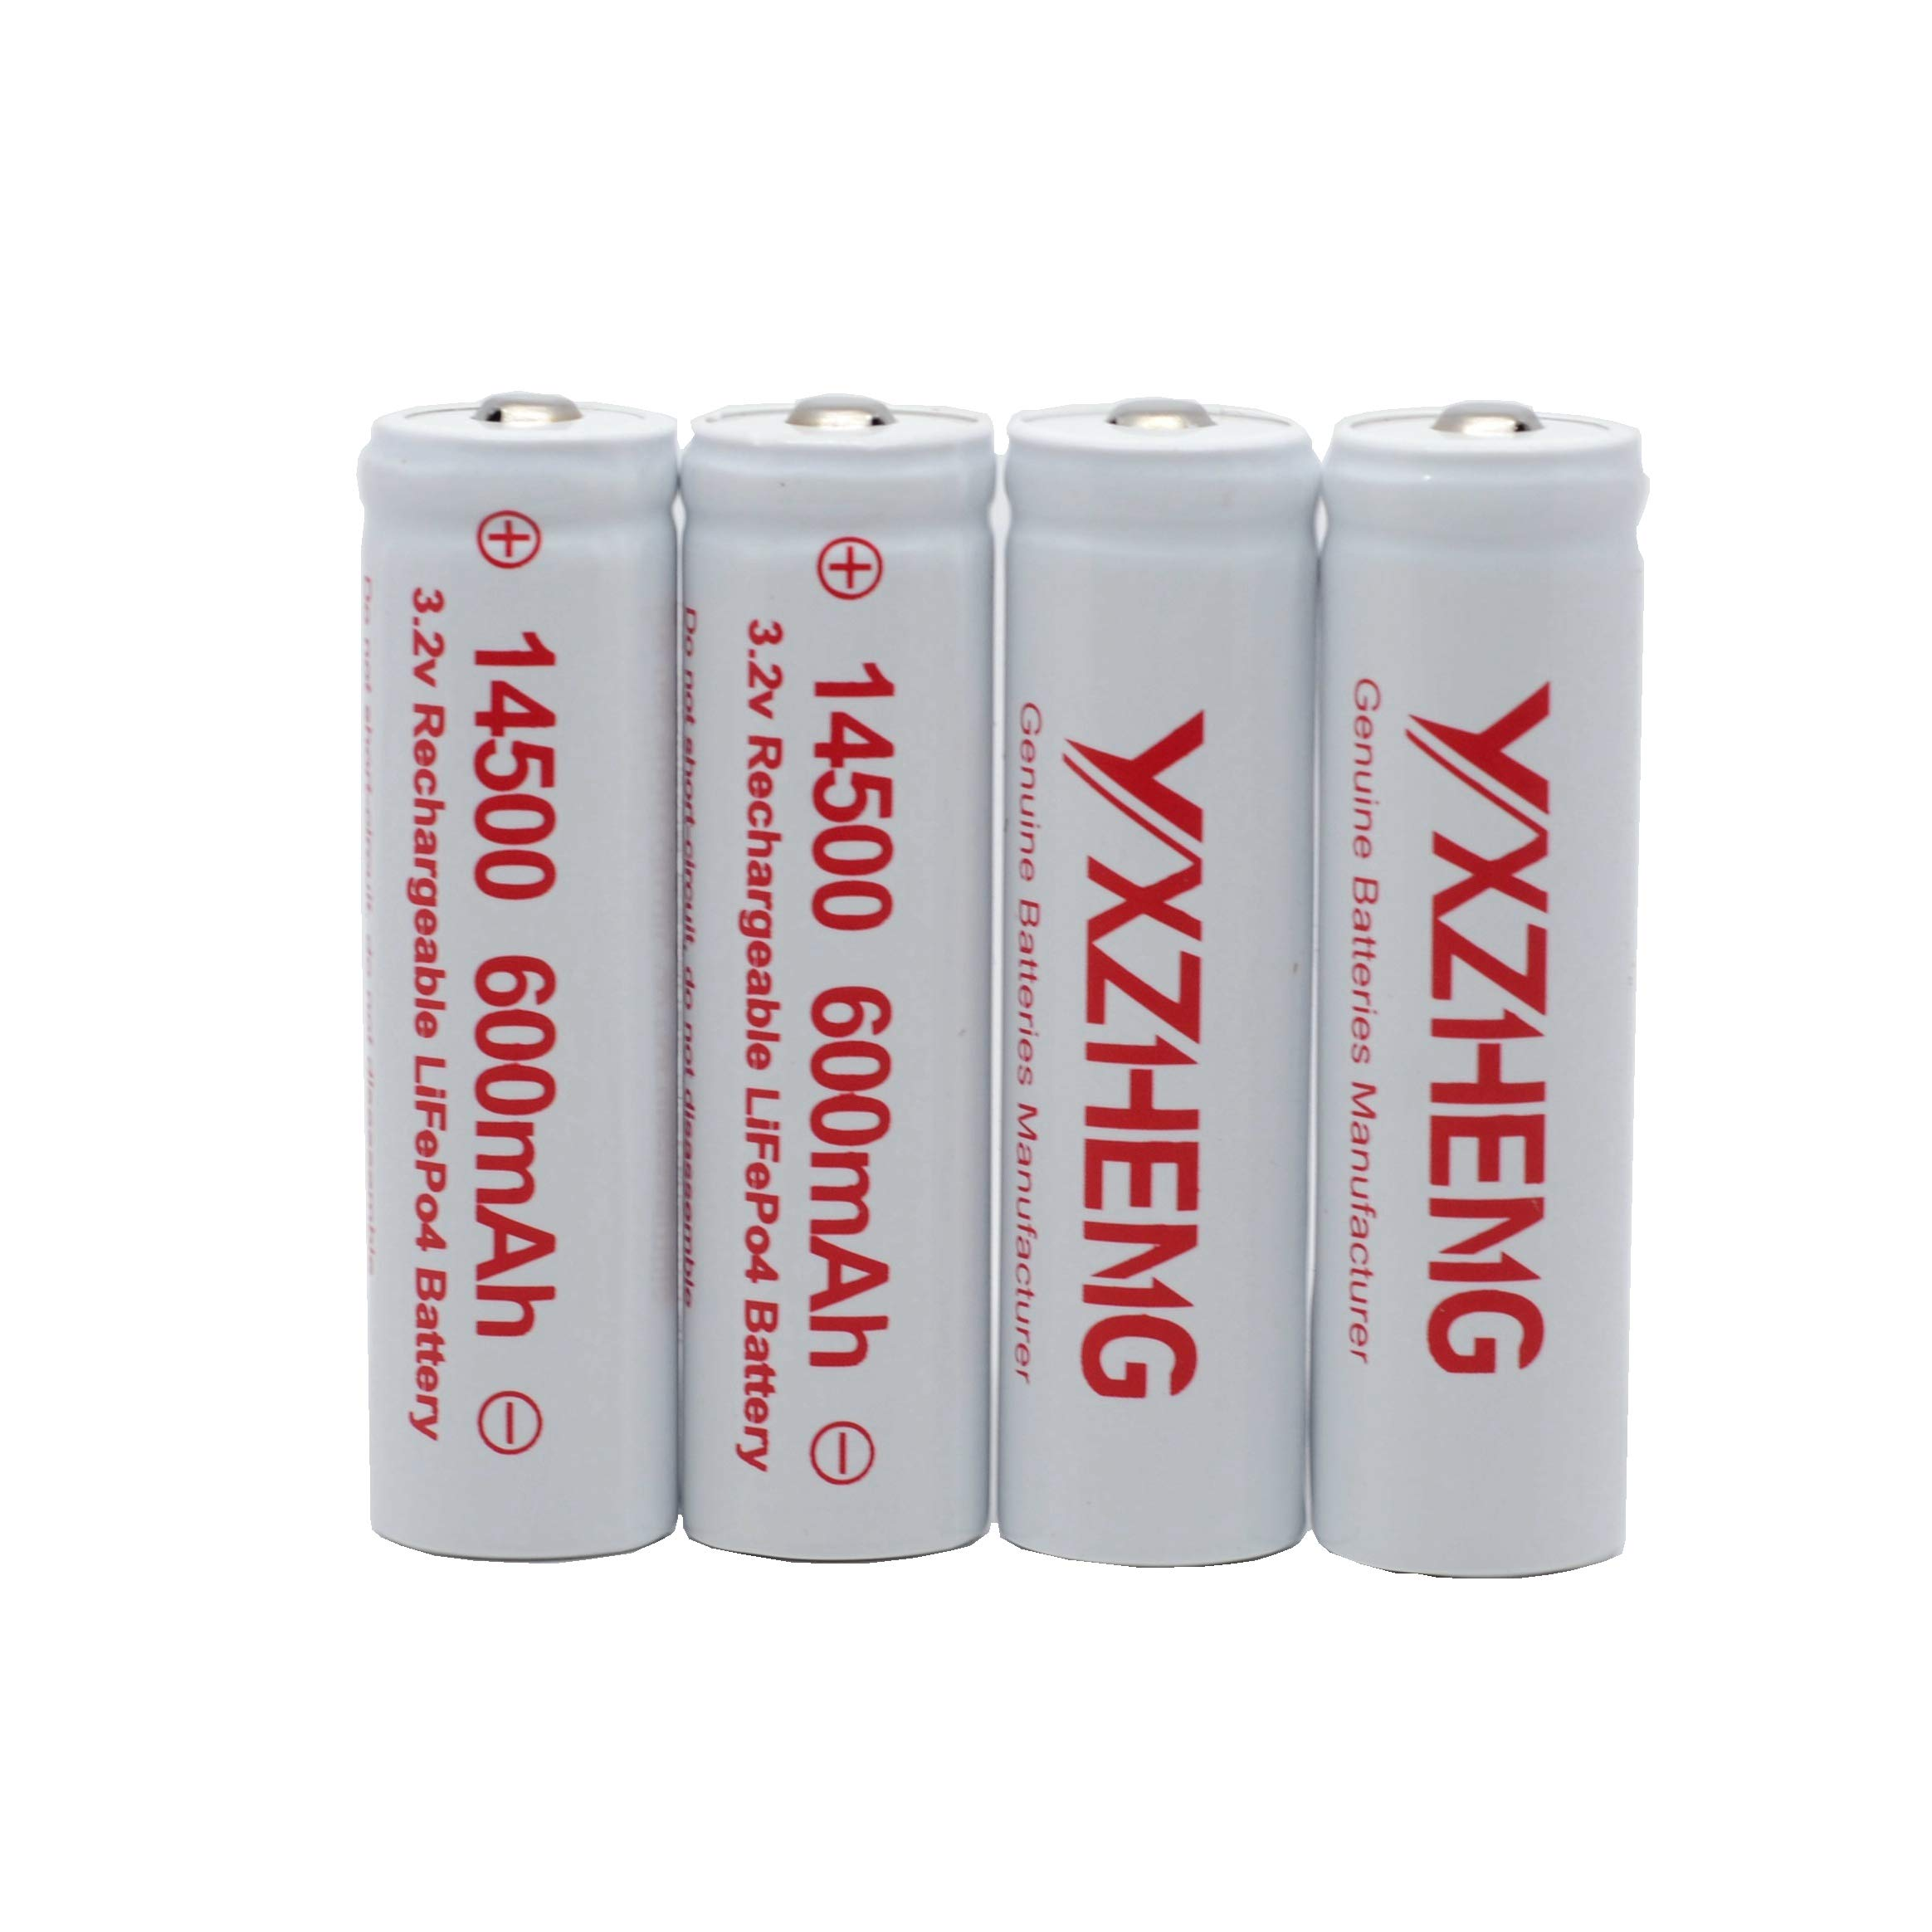 YXZHENG 4 PCS 3.2V LiFePO4 Batteries AA Size 600mAh Rechargeable for Camera Microphone Solar Lights Lawn Light by YXZHENG